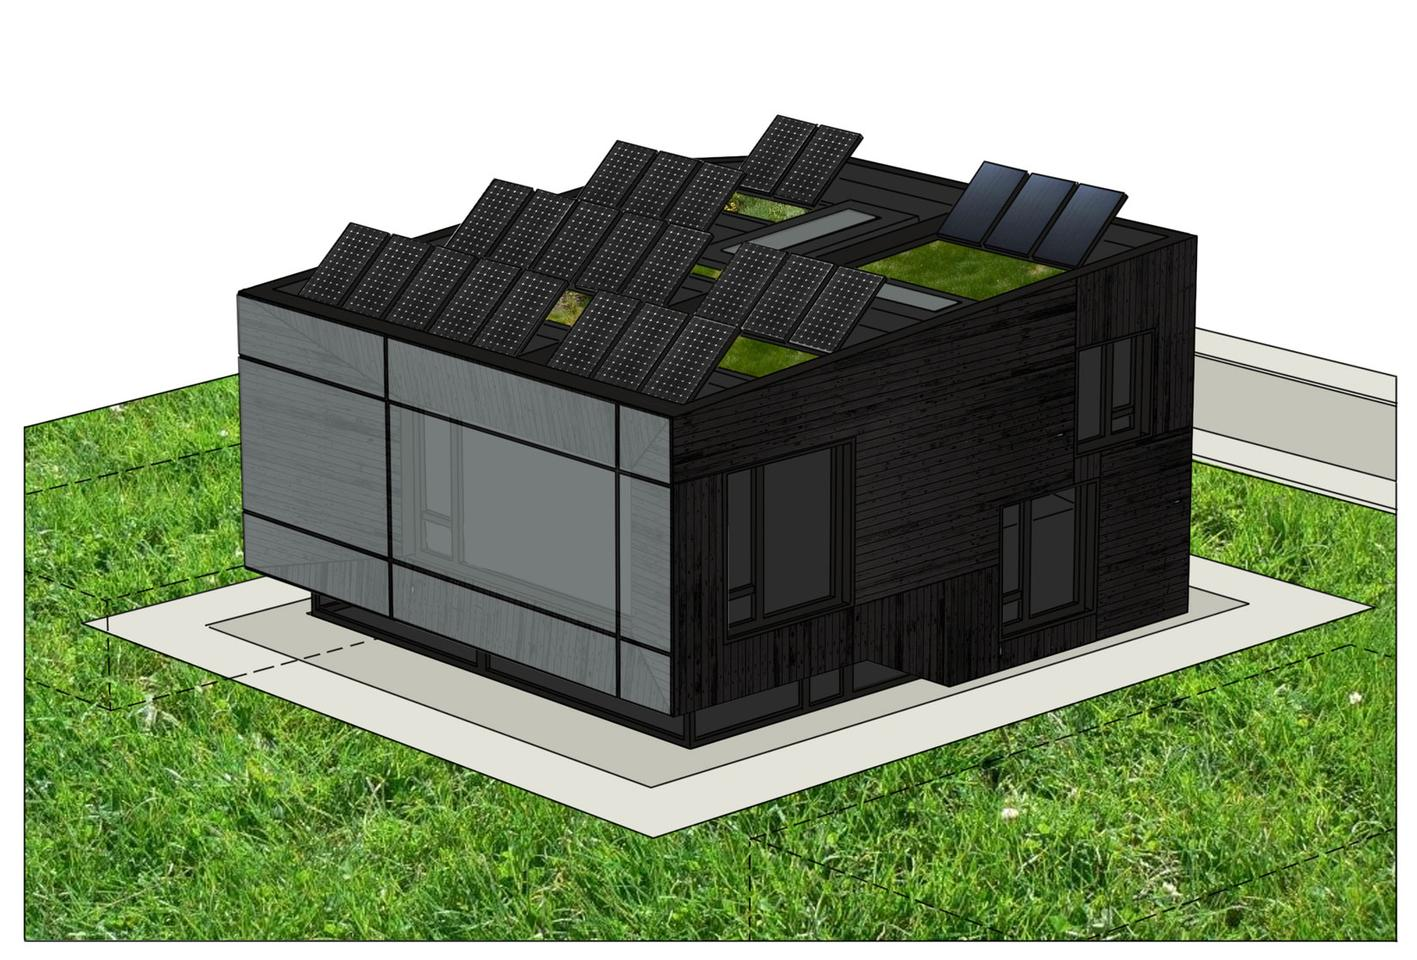 dontDIY's thoughtful Passive house design has won an international competition to design an ultra-low energy house to be built in Bulgaria (Image: Passive House Bulgaria)